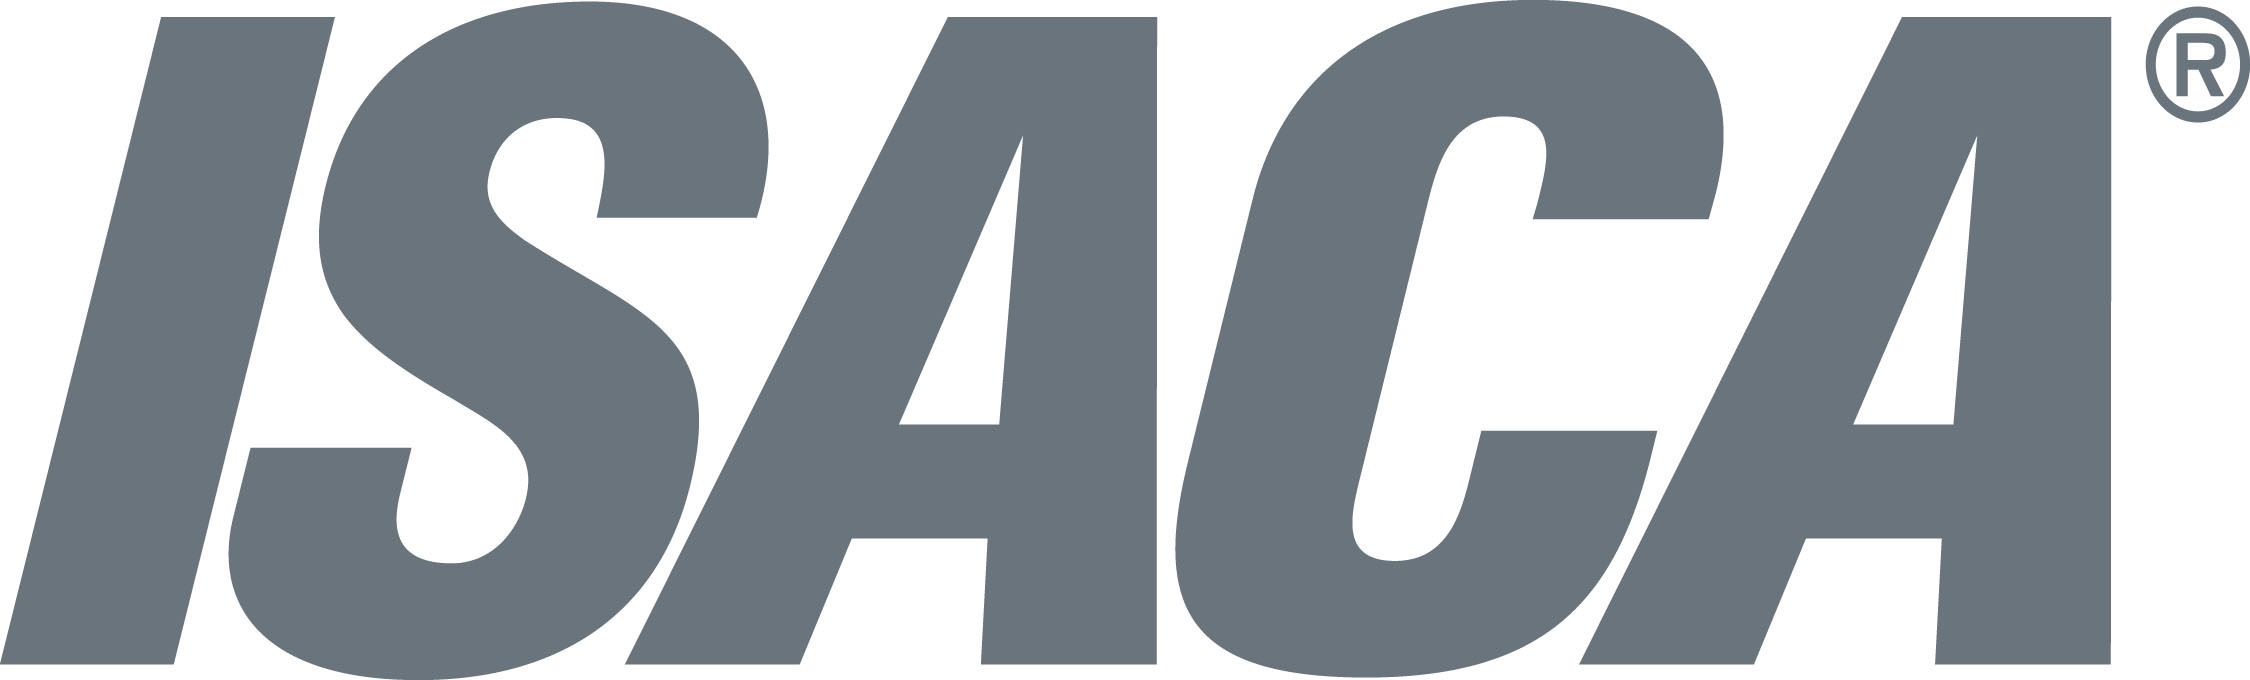 Isaca Introduces New Credential To Build And Recognize Auditors